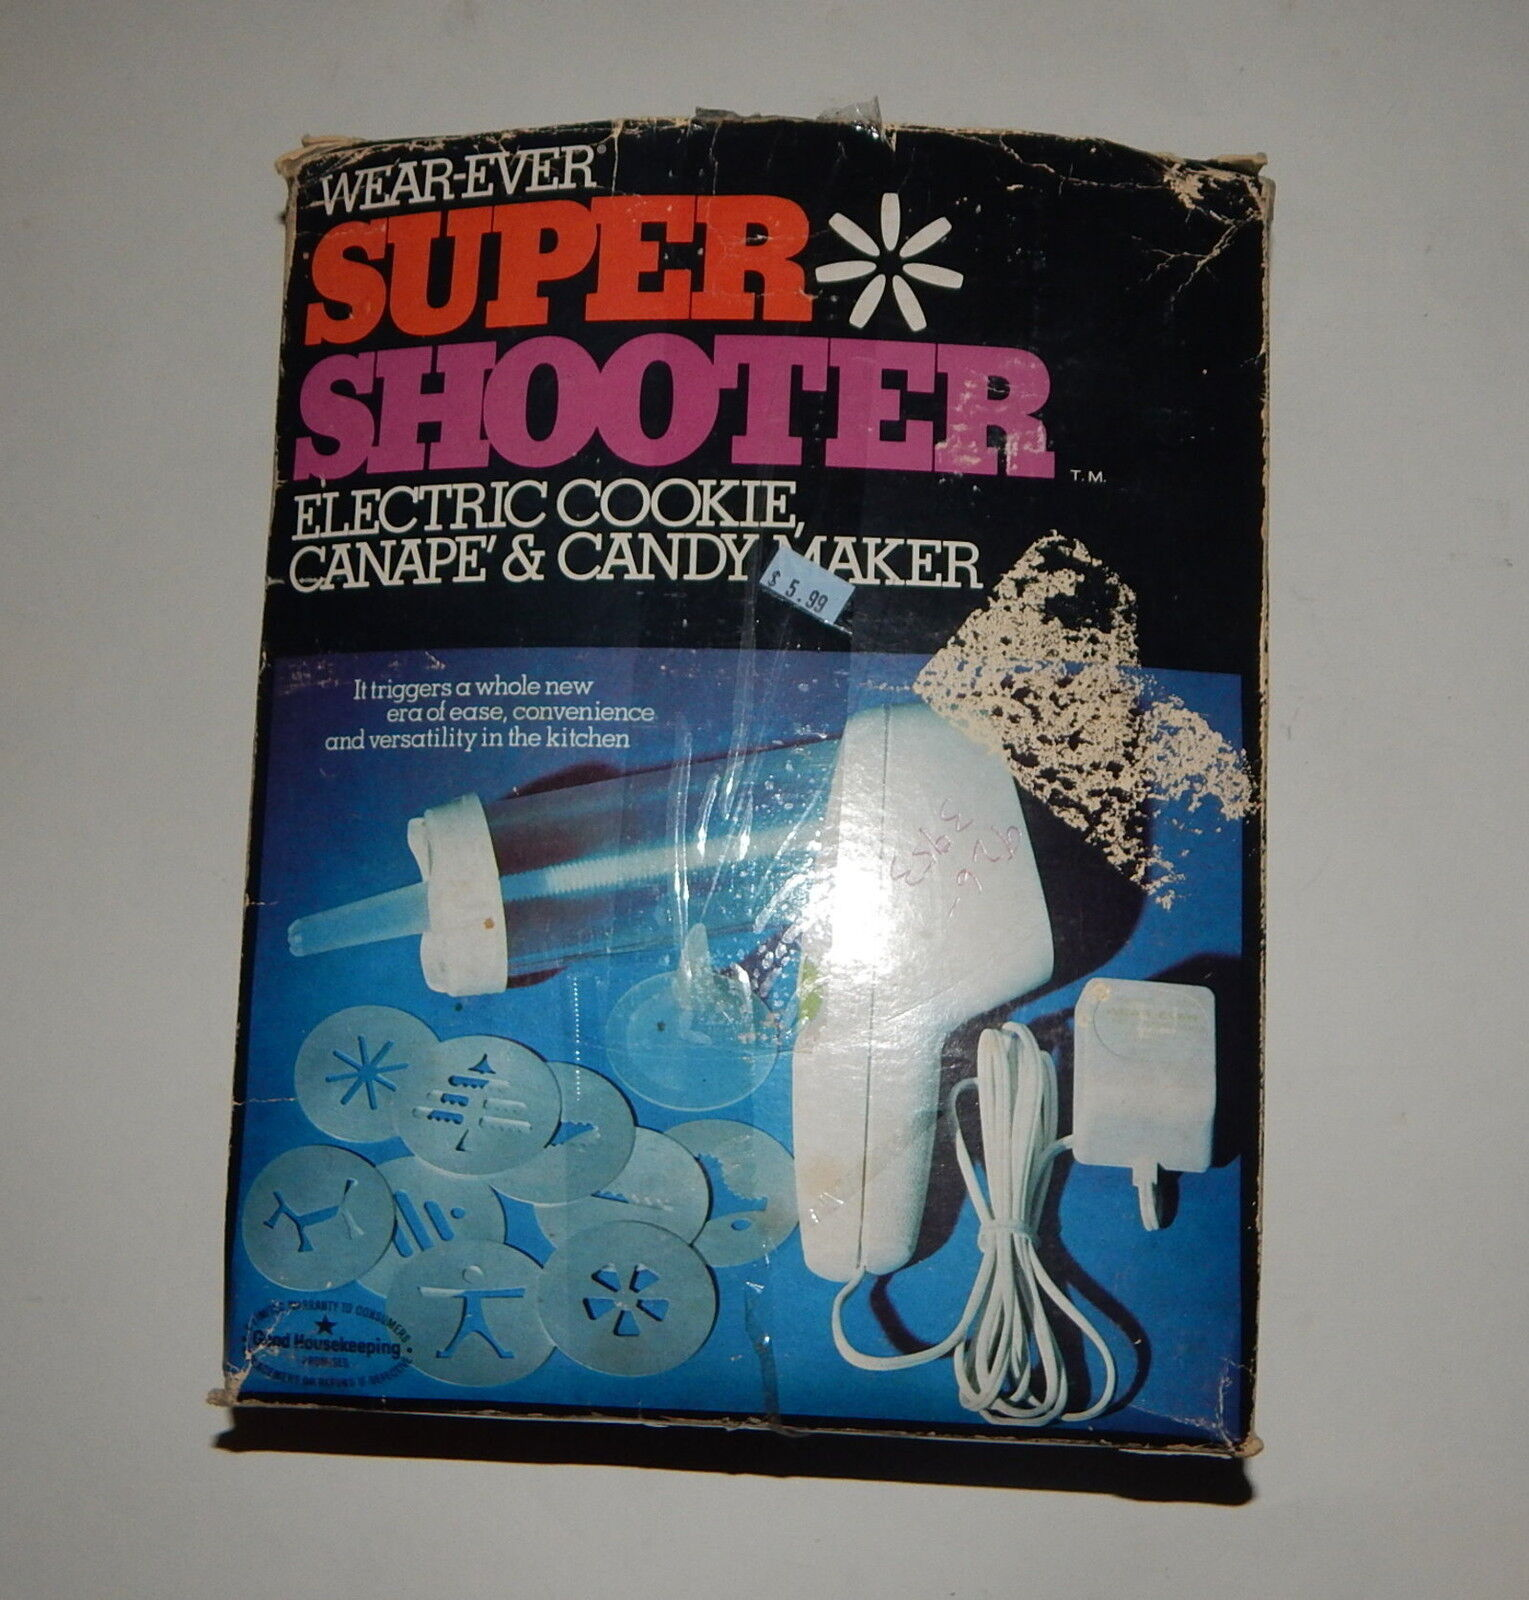 Vintage Wear-Ever Super Shooter Electric Cookie, Canape & Candy Maker R19285